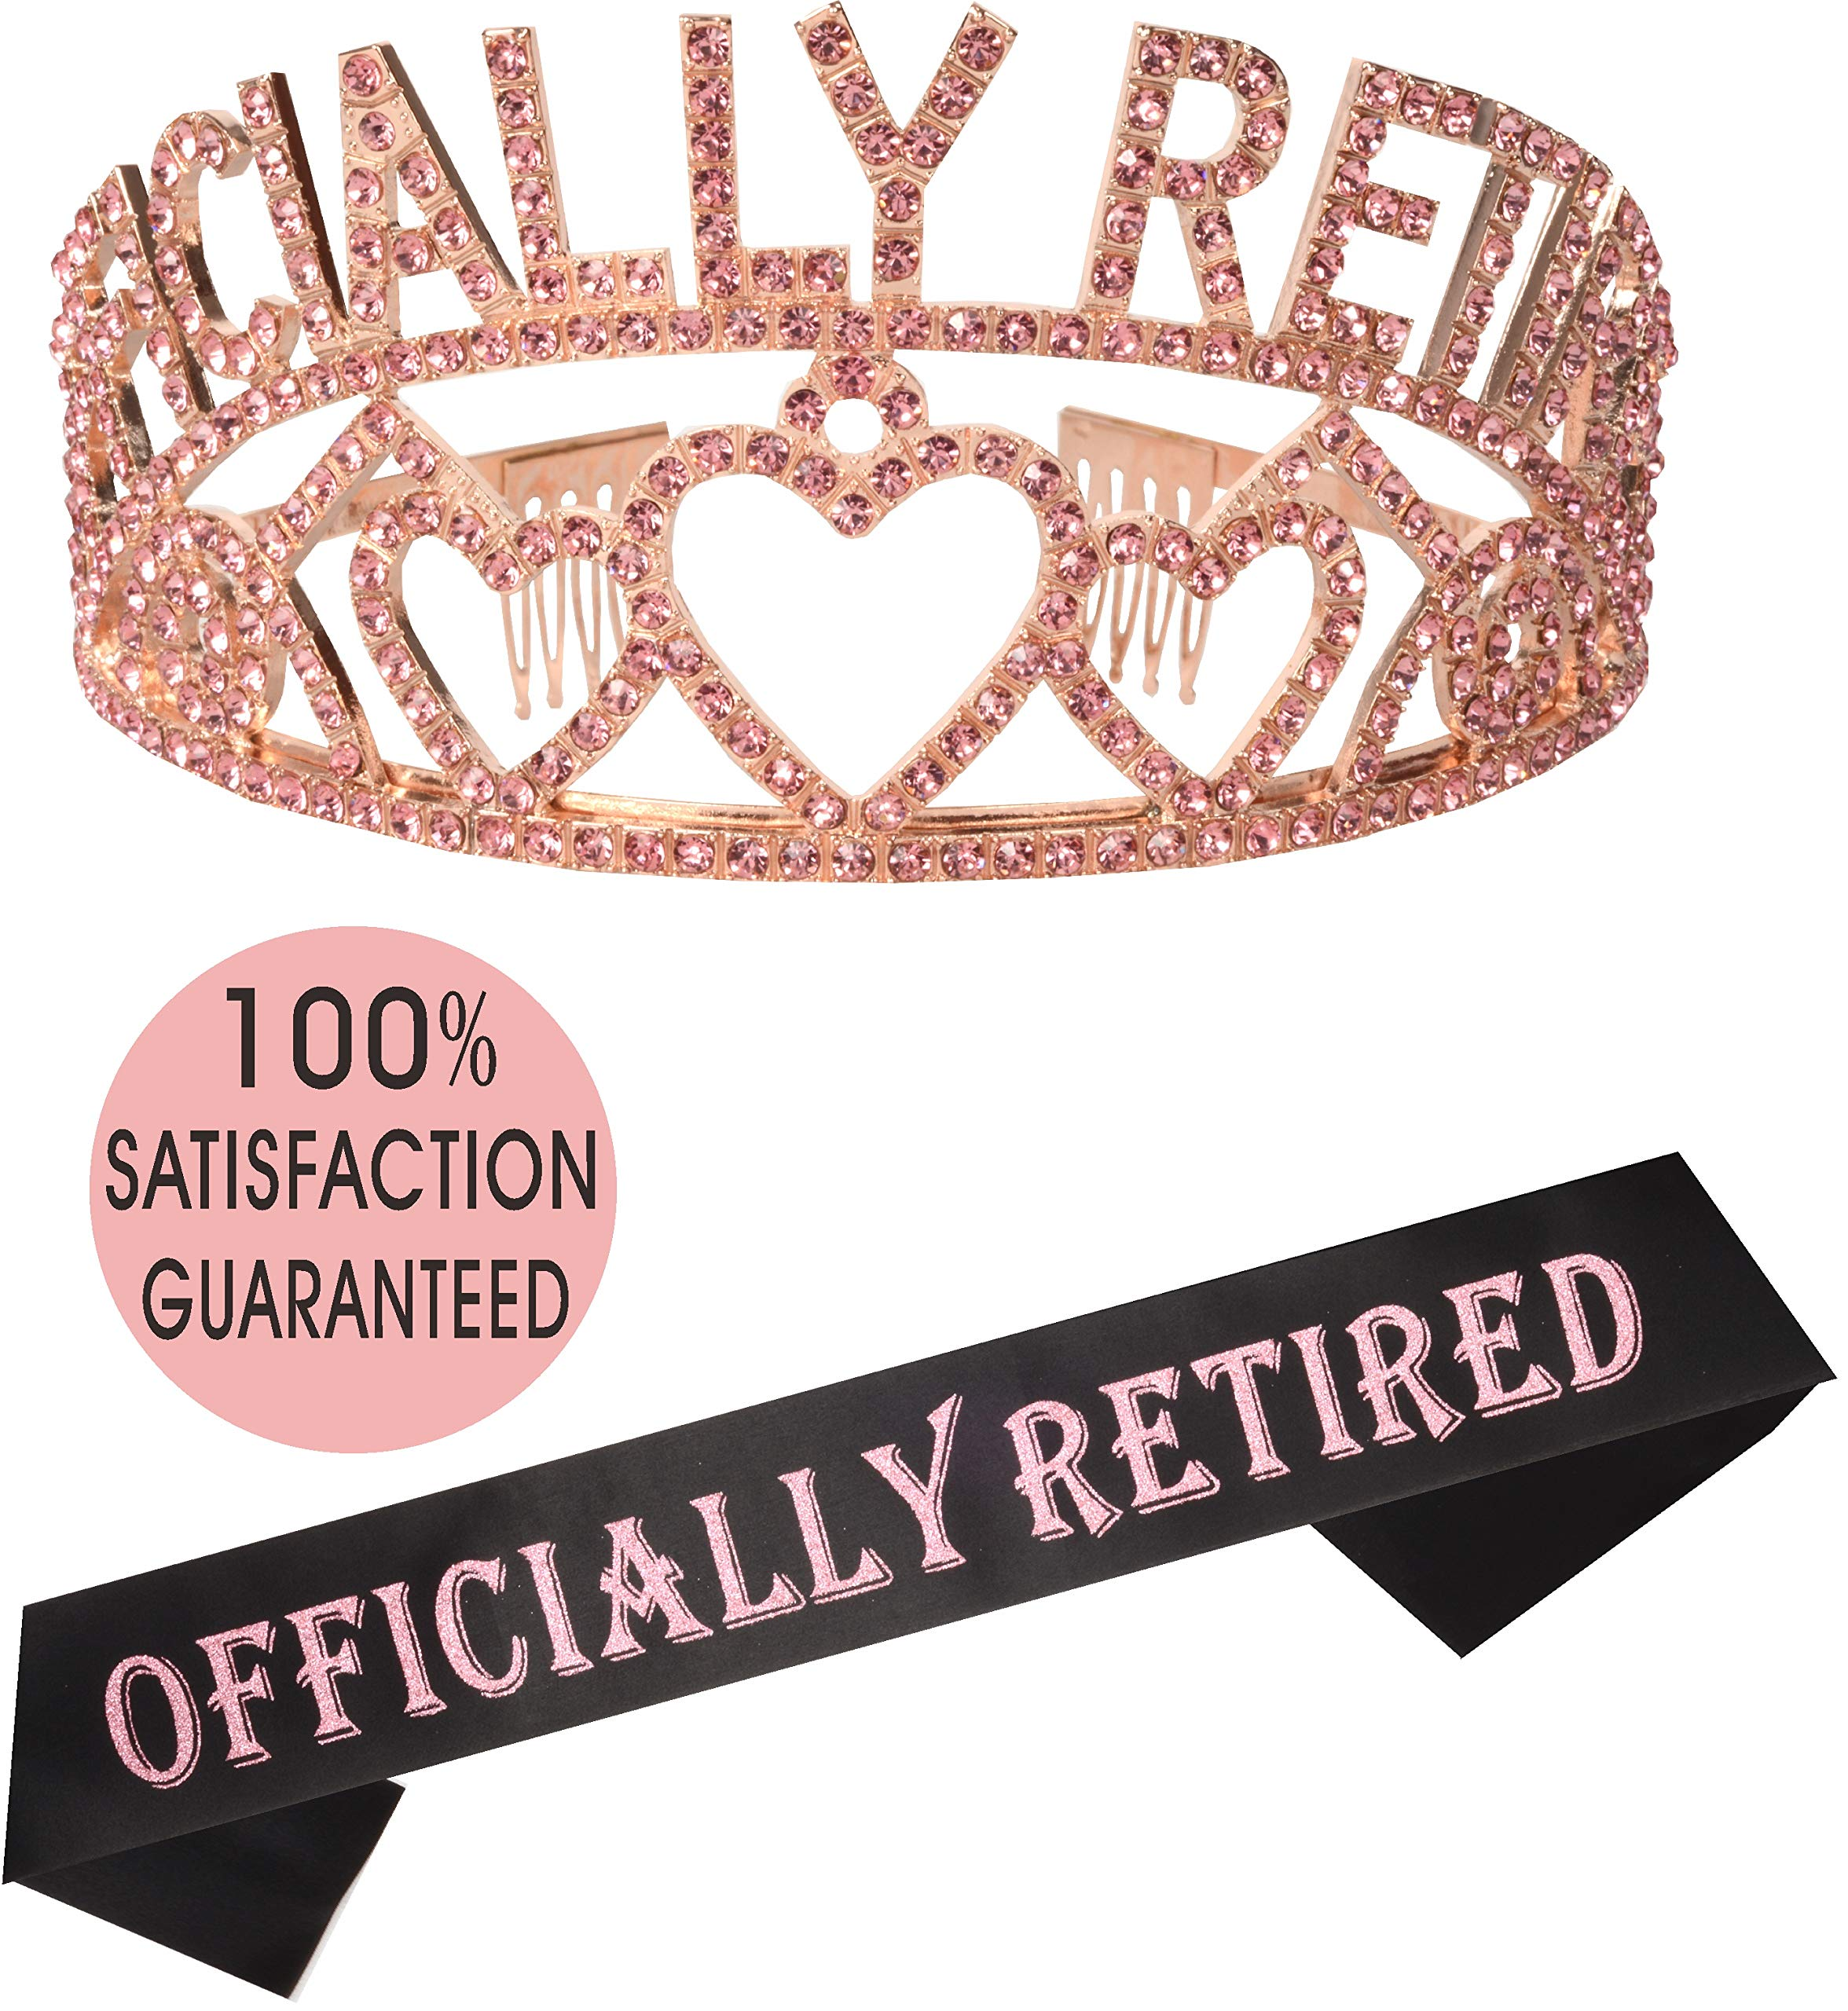 Pink Officially Retired Retirement Party Set | Officially Retired Tiara/Crown | Retired Sash | I'm Retired! Satin Sash| Retirement Party Supplies, Gifts, Favors and Decorations | Great for Retiremen